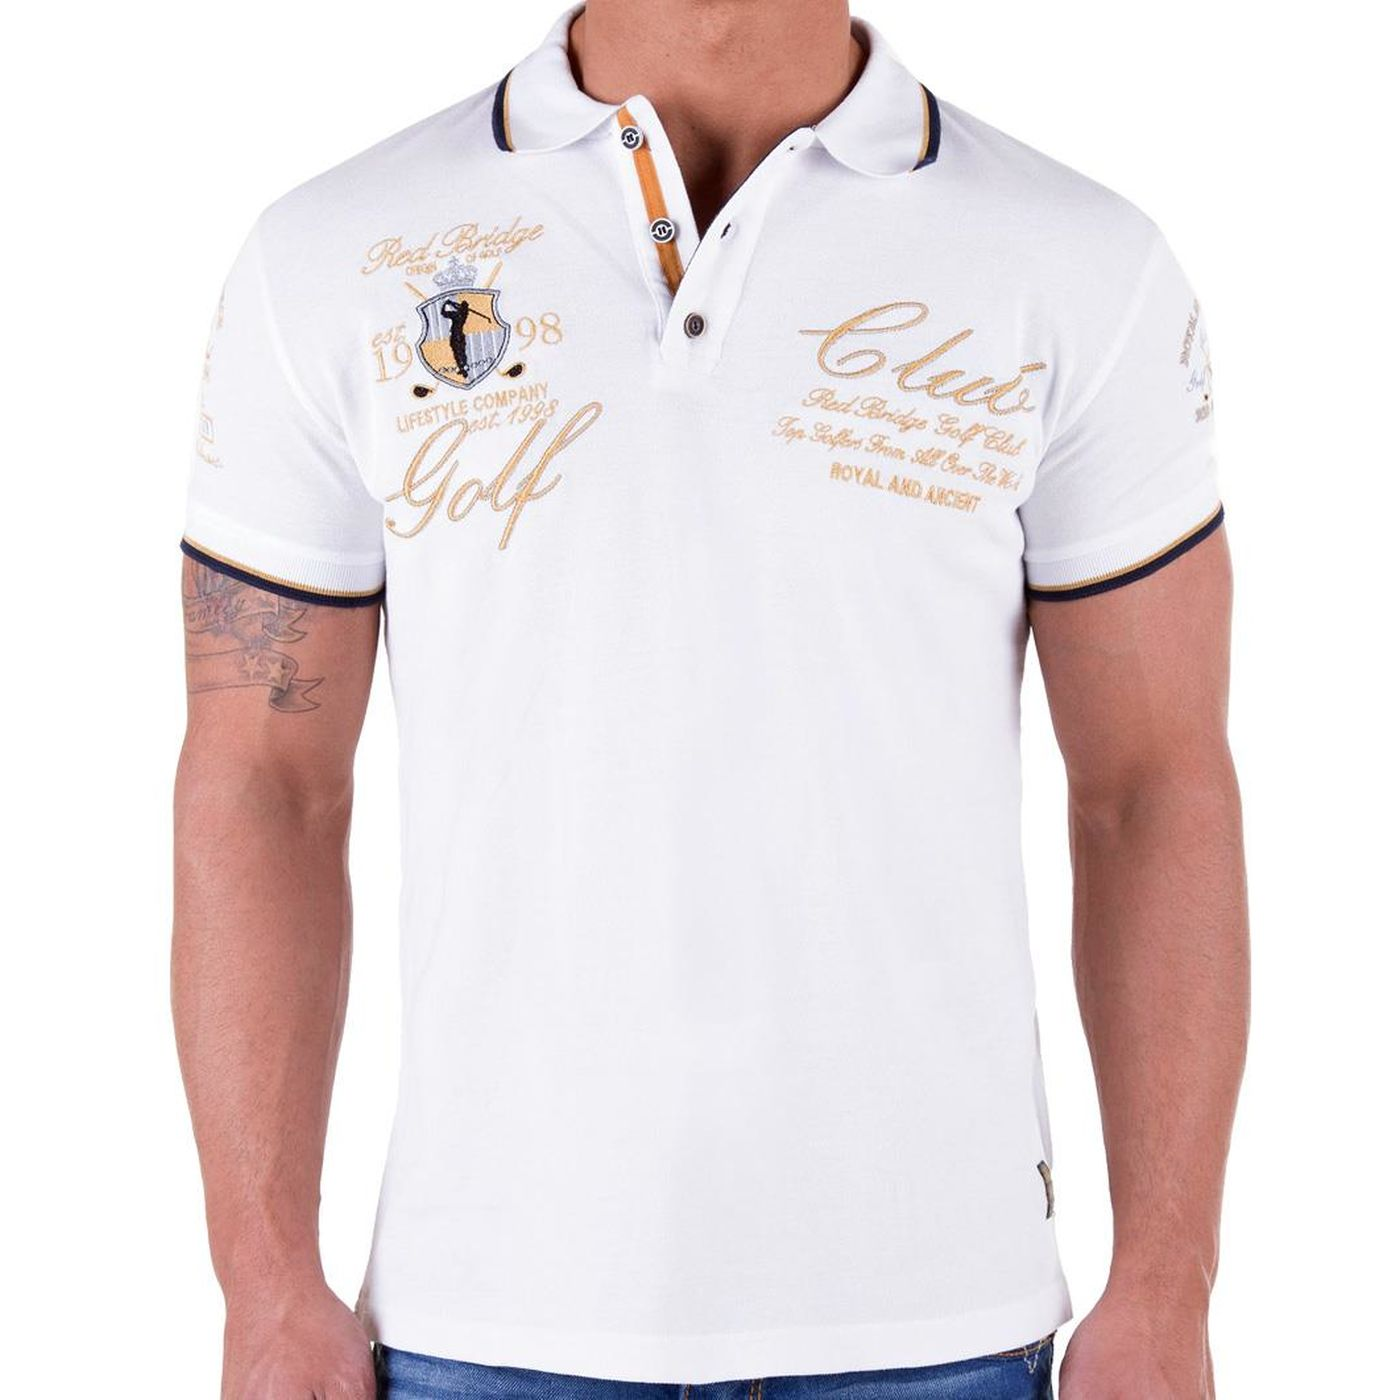 red bridge herren golf club poloshirt t shirt weiss r41209 white 13 99. Black Bedroom Furniture Sets. Home Design Ideas